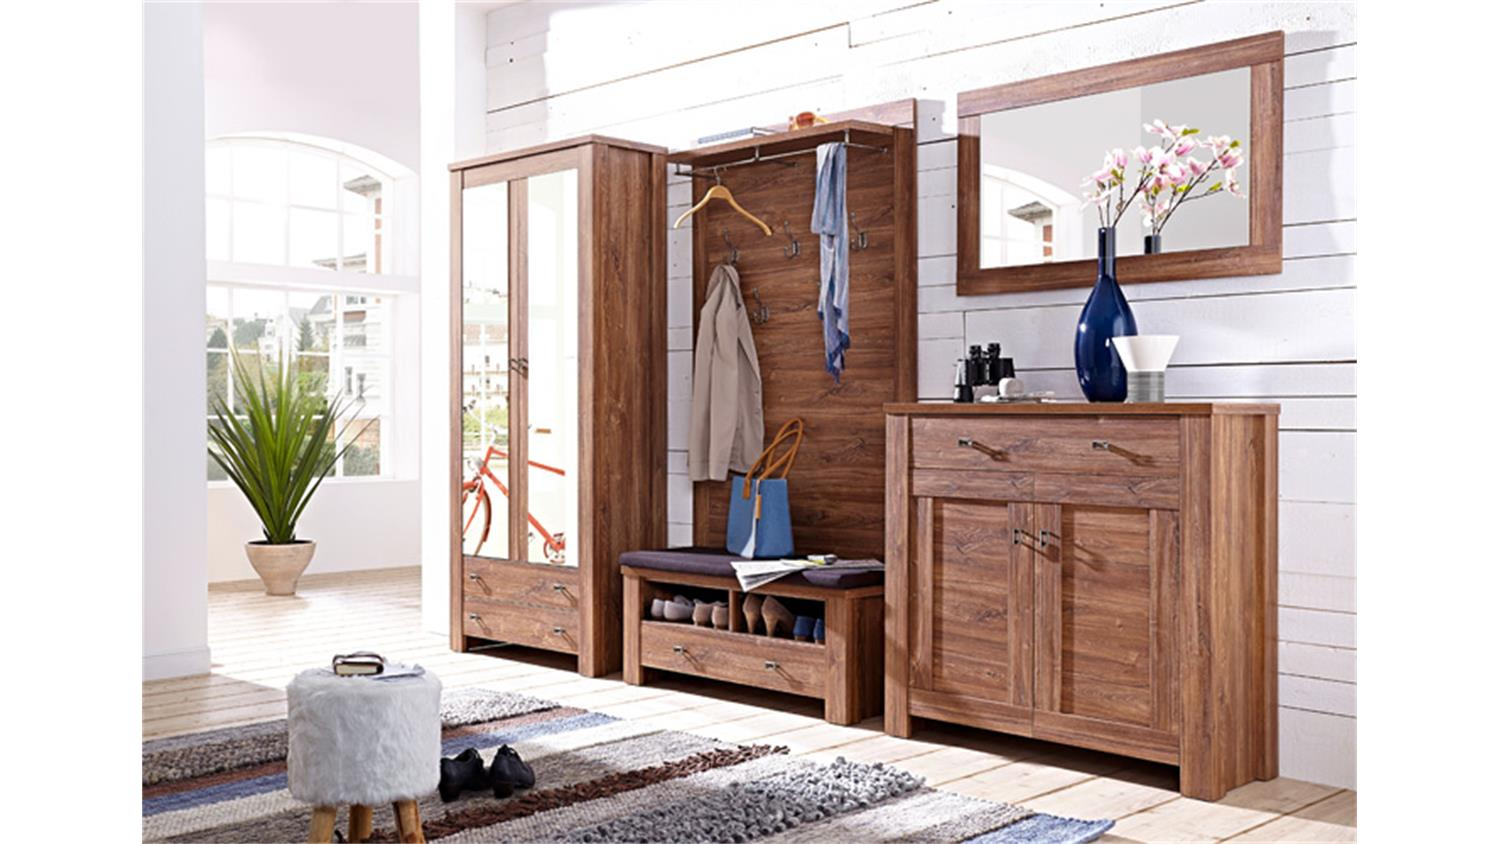 garderobenset 1 br ssel garderobe set in akazie dunkel. Black Bedroom Furniture Sets. Home Design Ideas